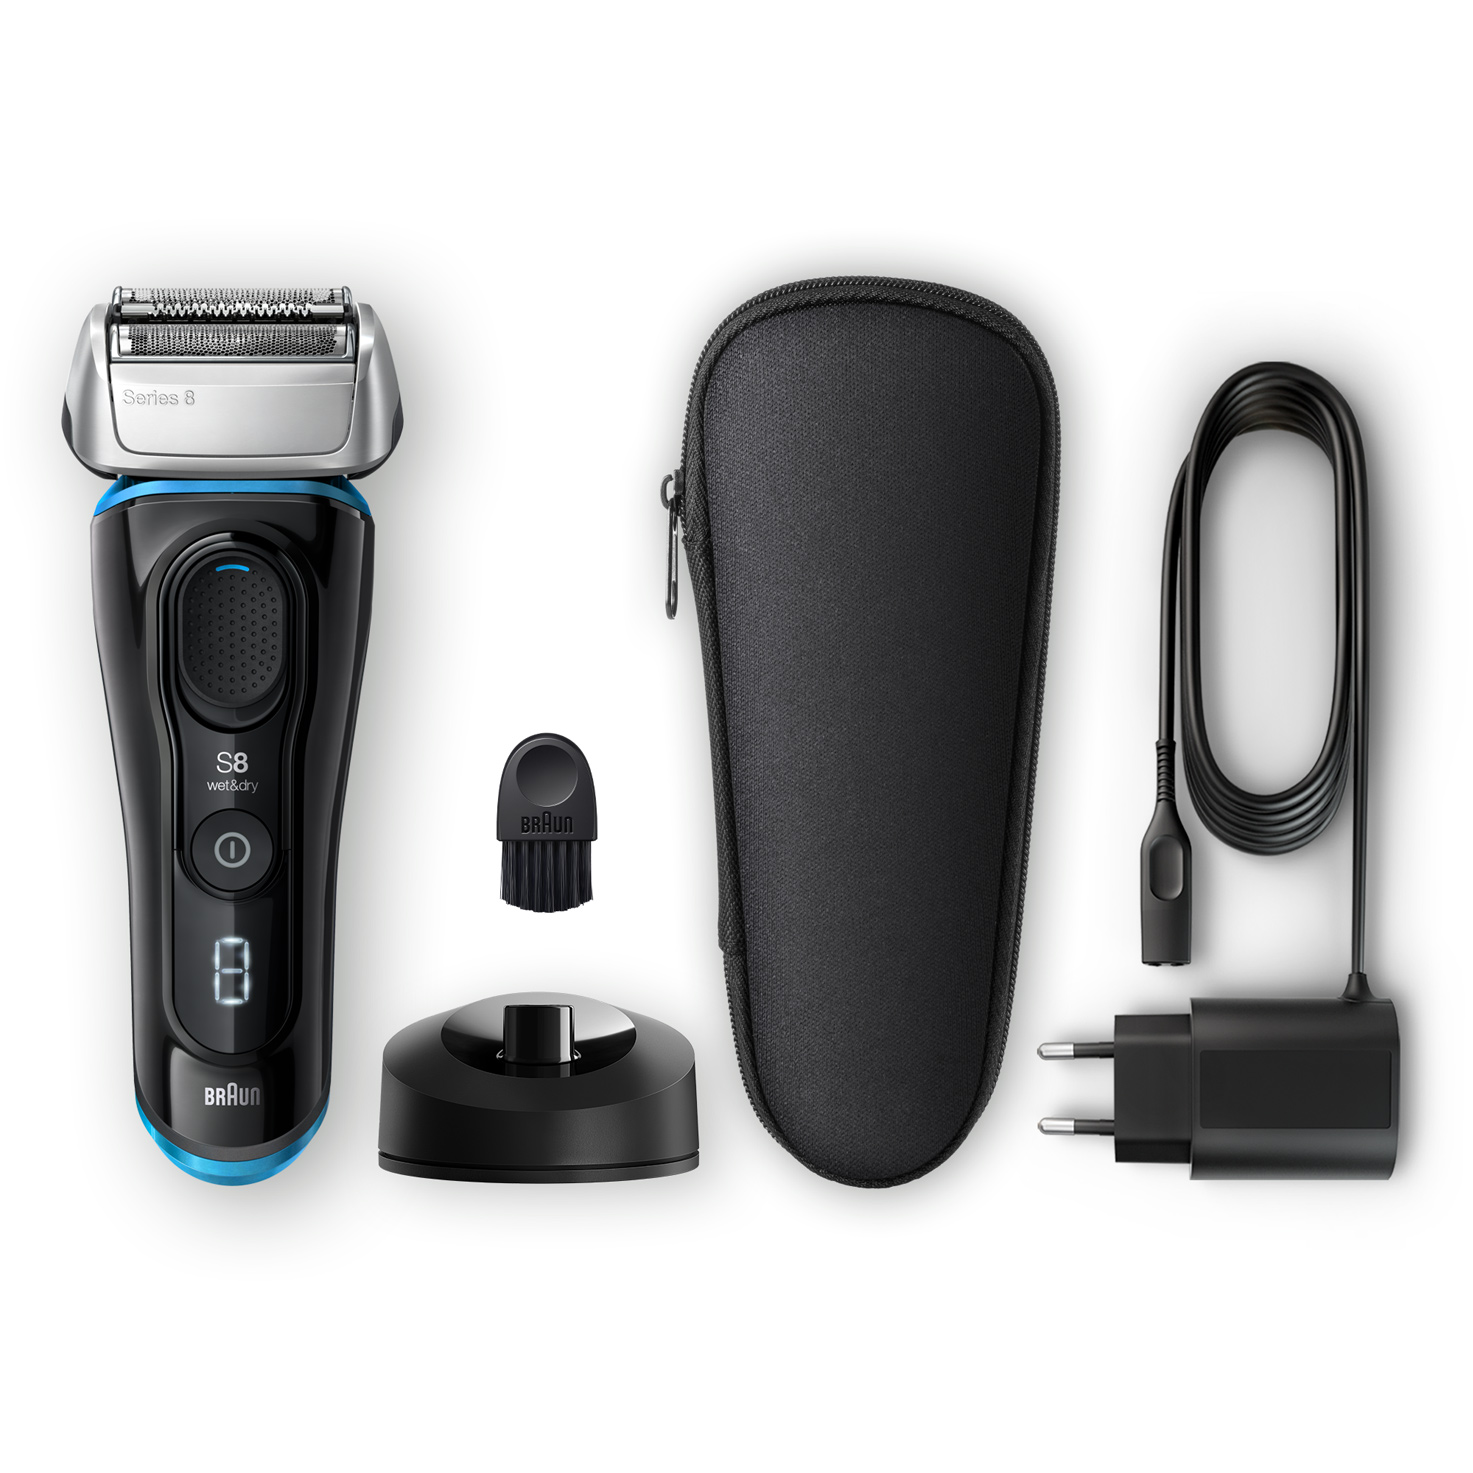 Series 8 8345s shaver - What´s in the box